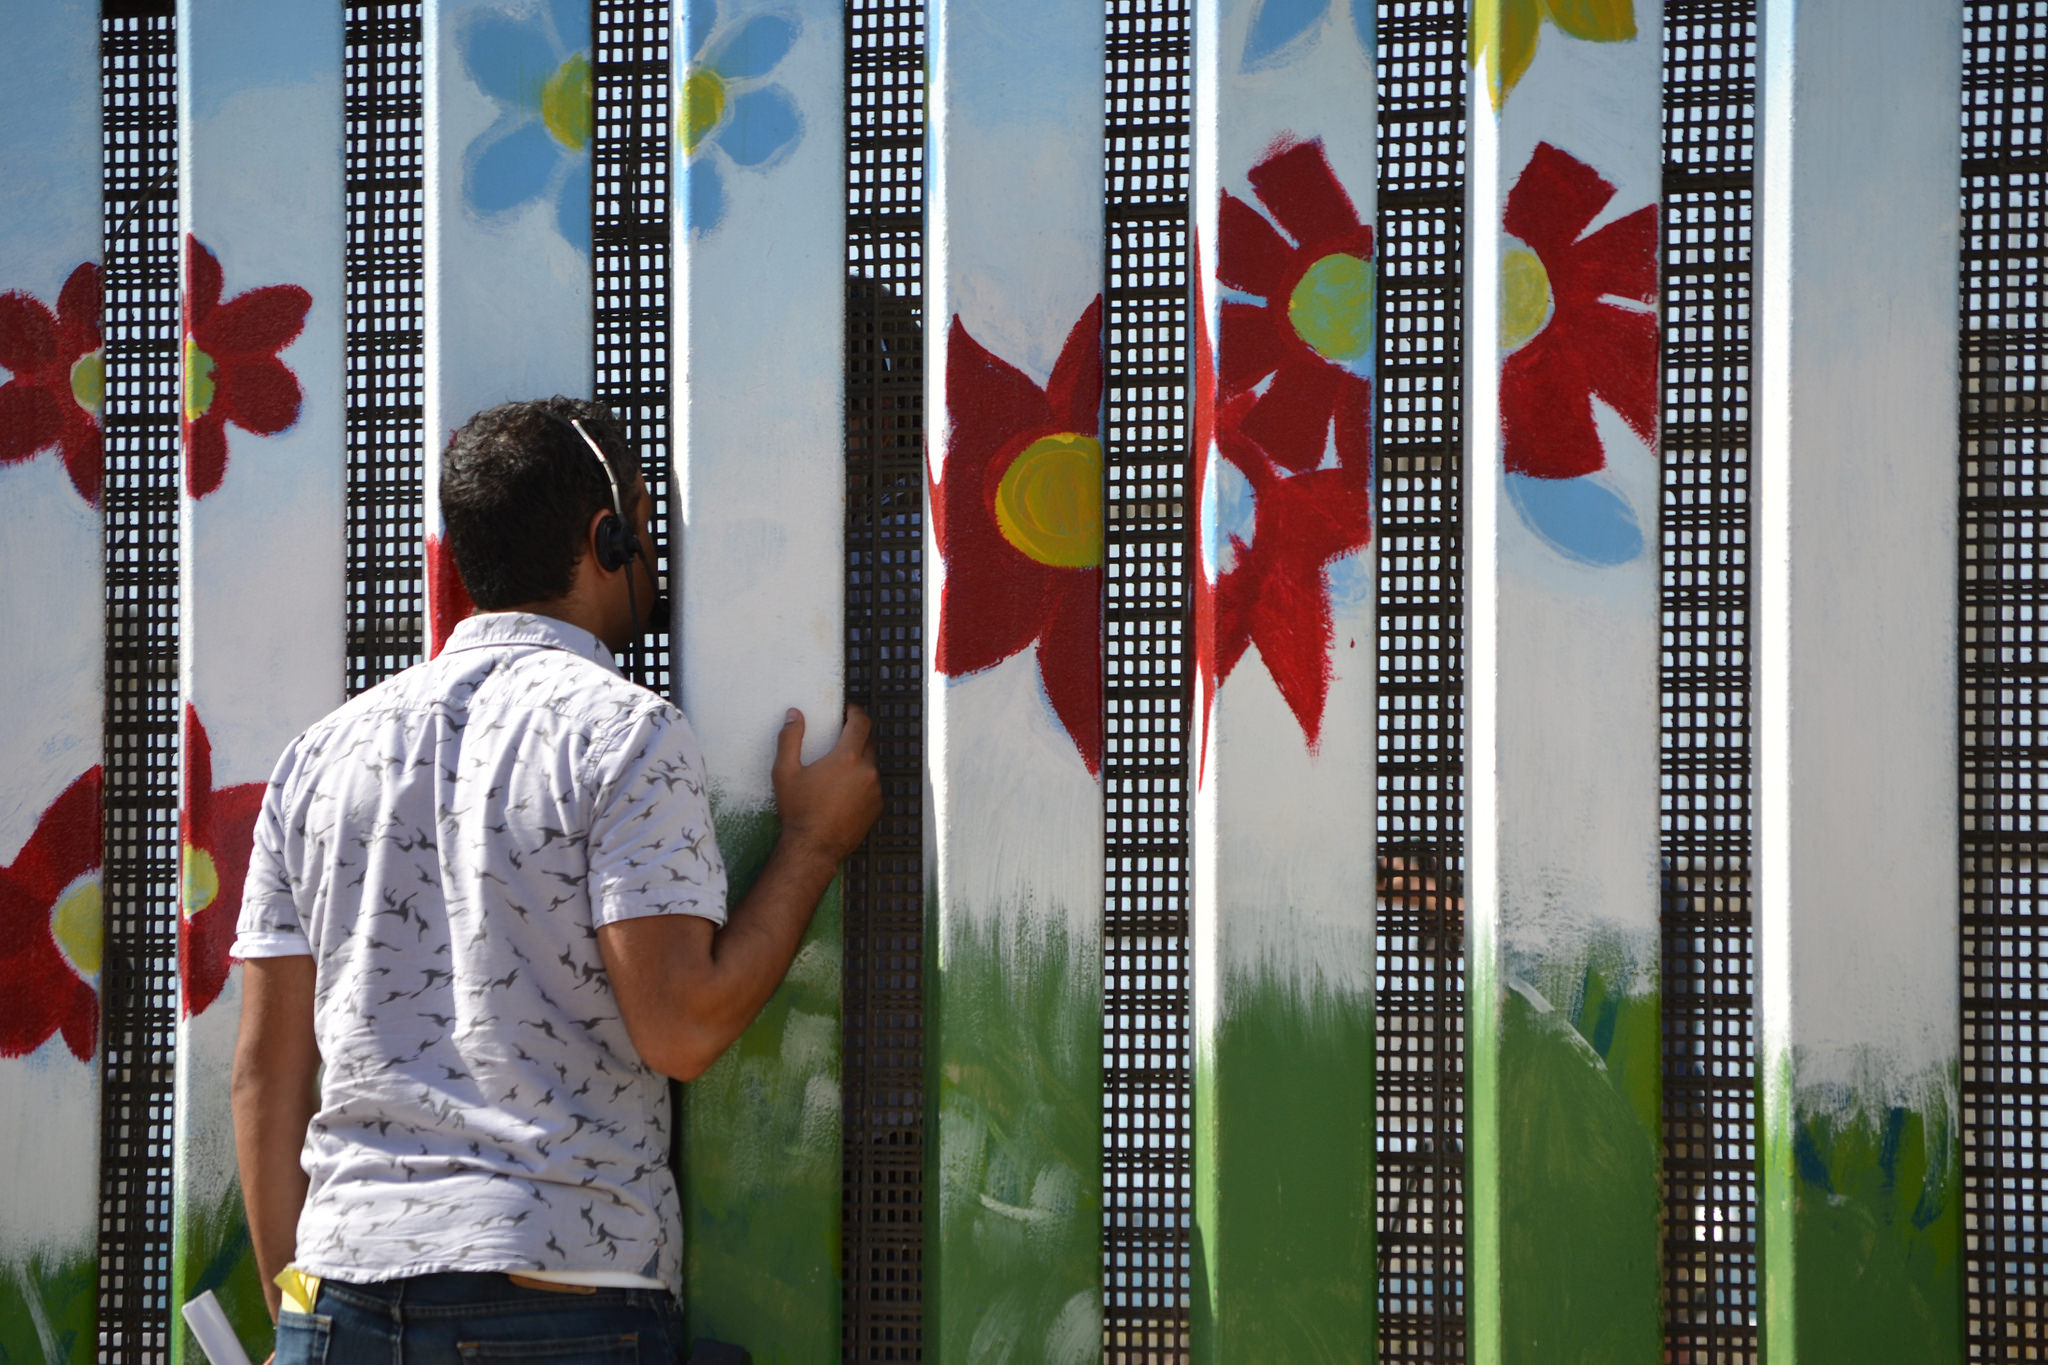 The coordination of the two sides happened through the most low-tech of methods: shouting through the fence. On the US side, the fence looks austere — but on the Mexican side, it's painted with murals. Photo: Arturo Loaiza/TEDxMonumento258